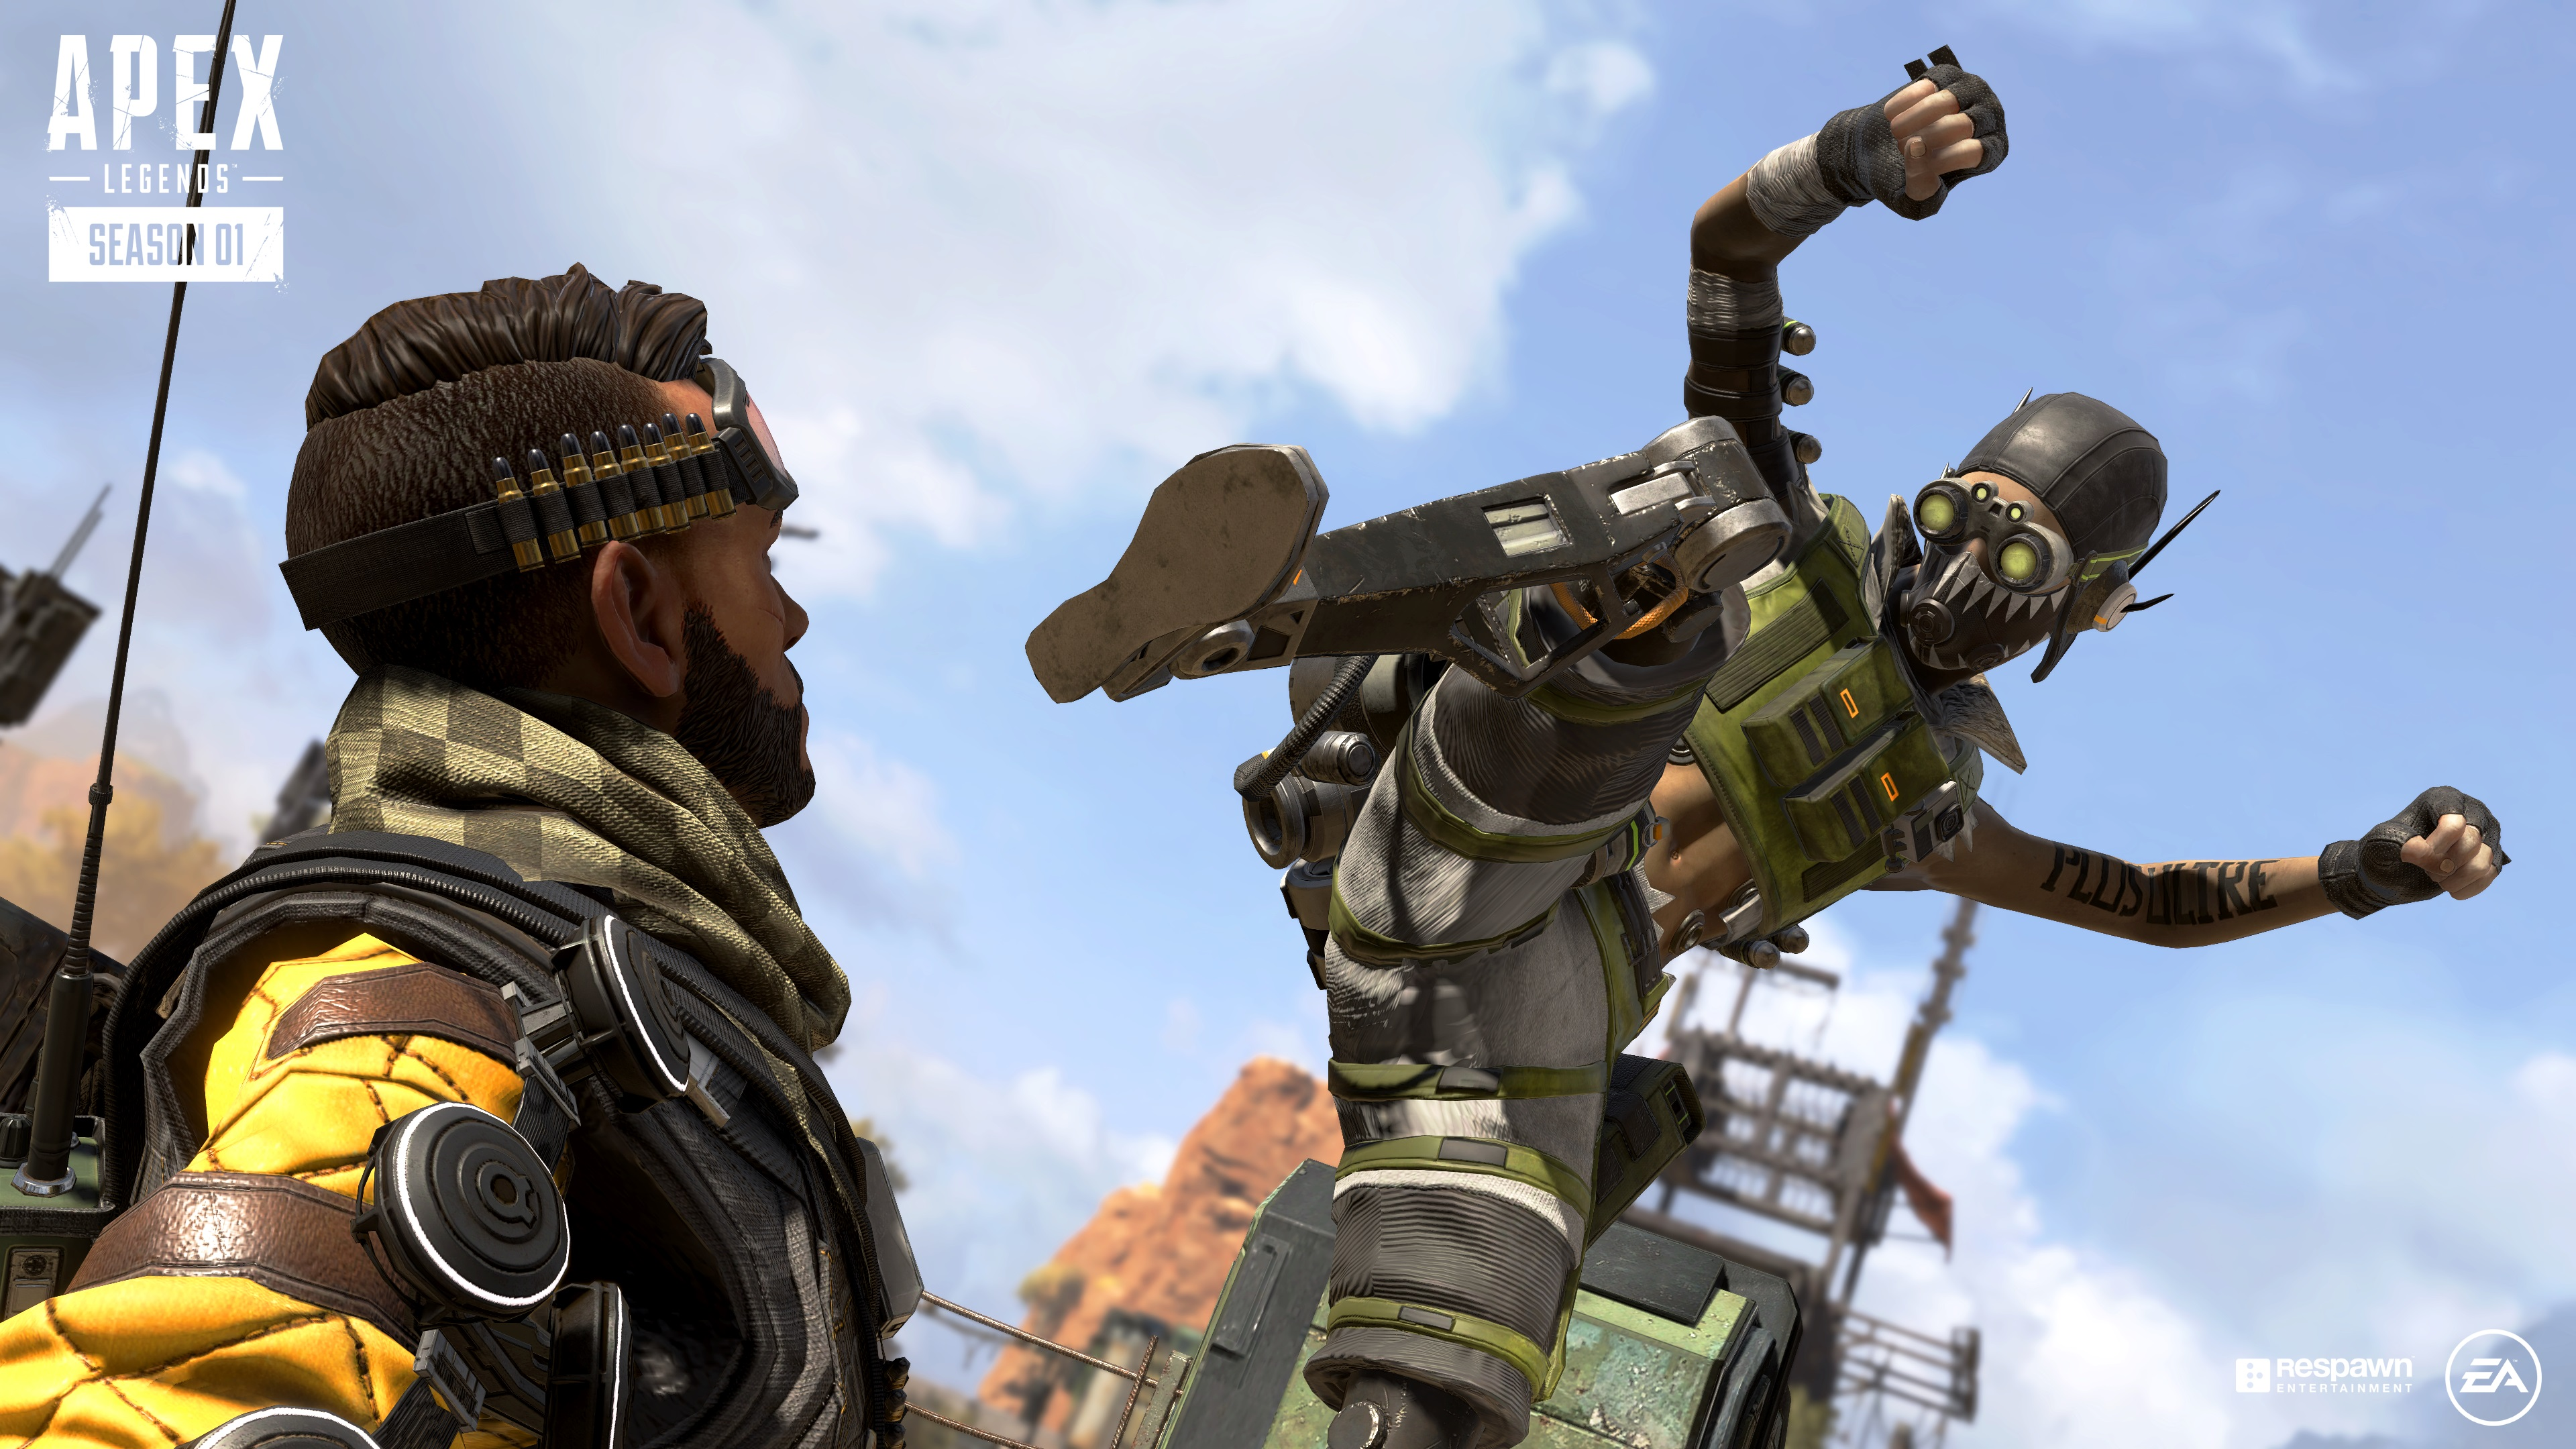 First ever Apex Legends invitational taking place right